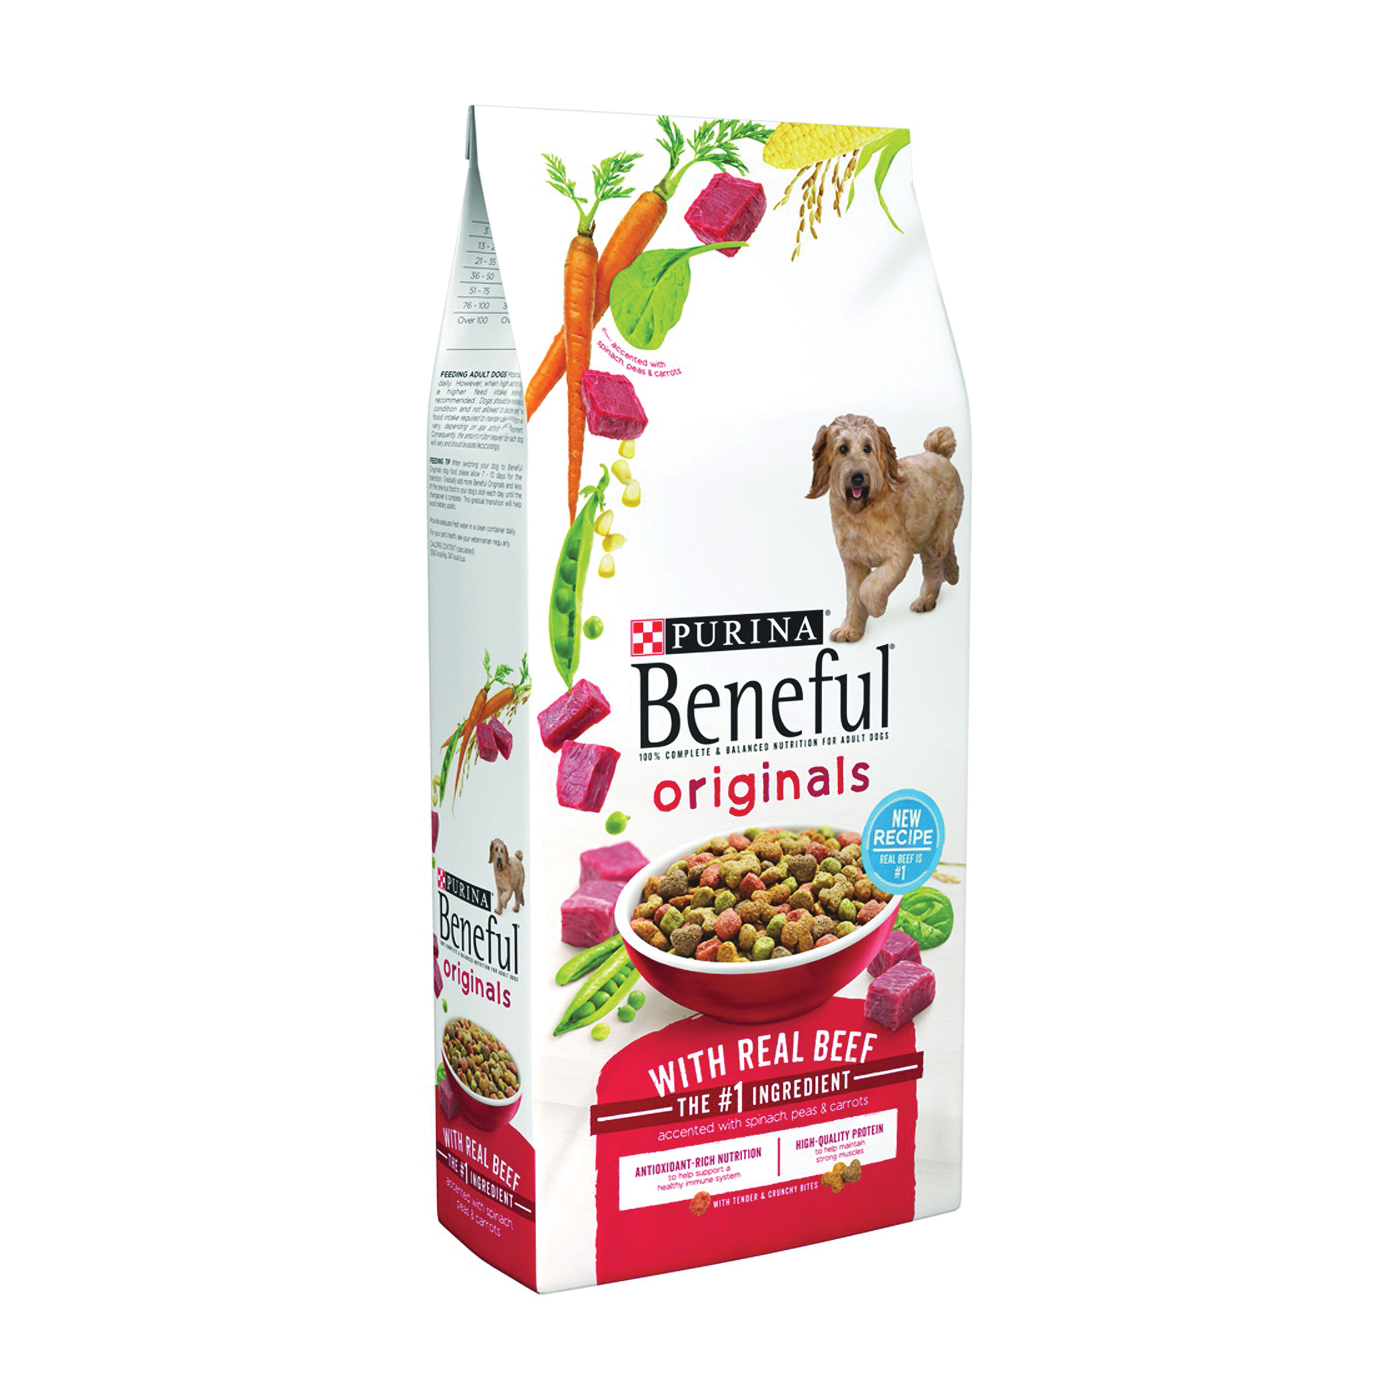 Picture of Beneful 1780013476 Dry Dog Food, 15.5 lb Package, Bag